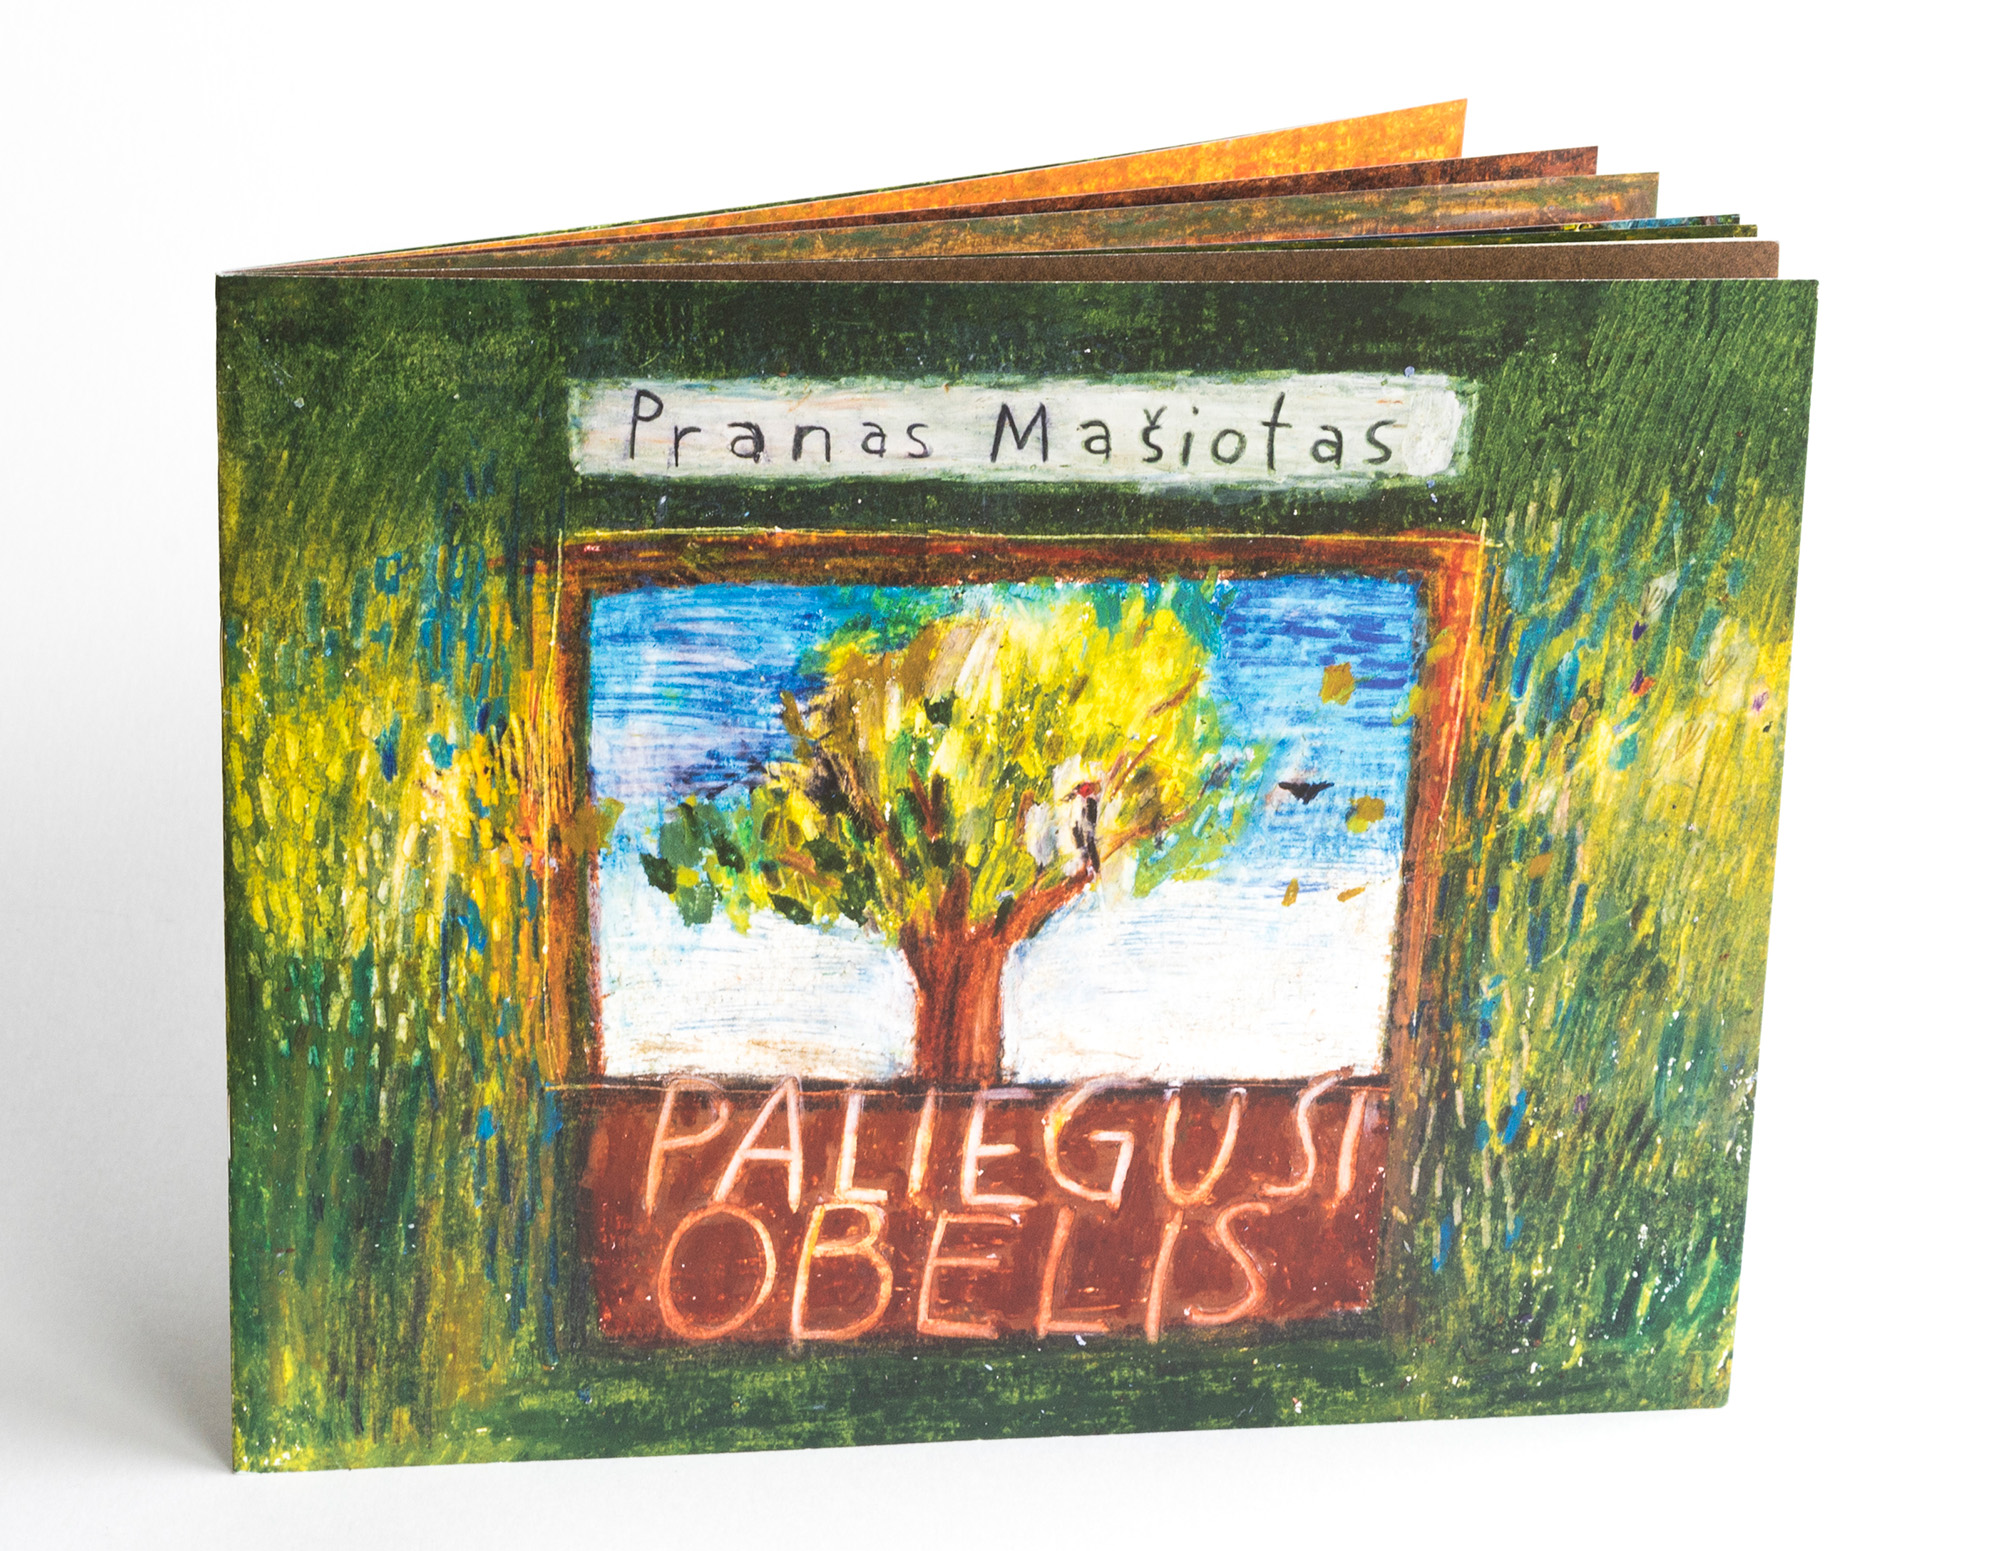 Cover of Paliegusi obelis